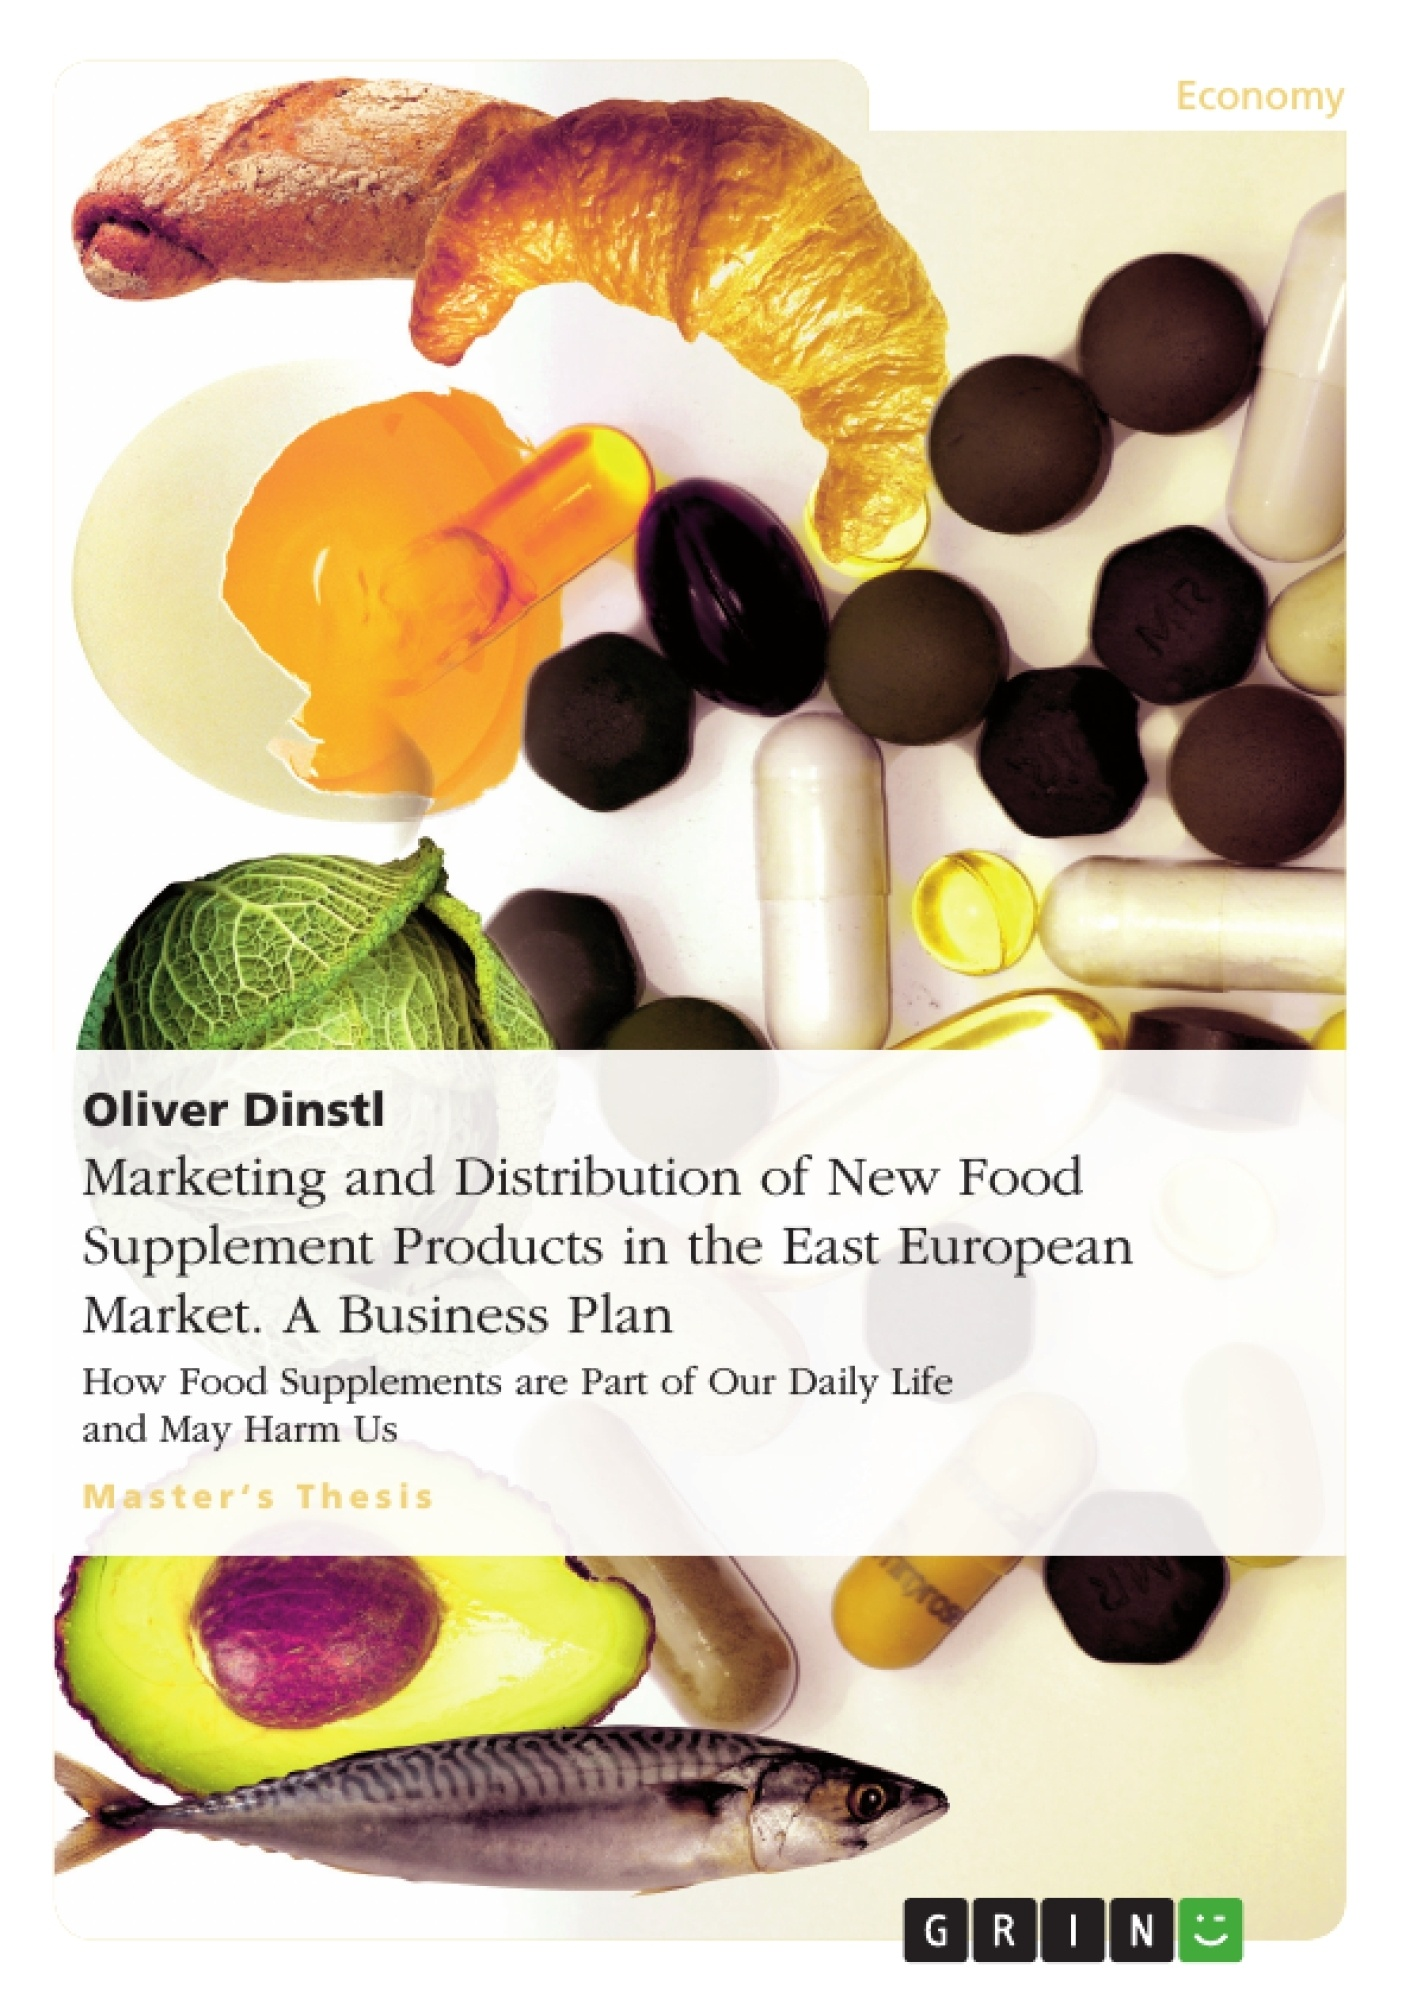 Title: Marketing and Distribution of New Food Supplement Products in the East European Market. A Business Plan